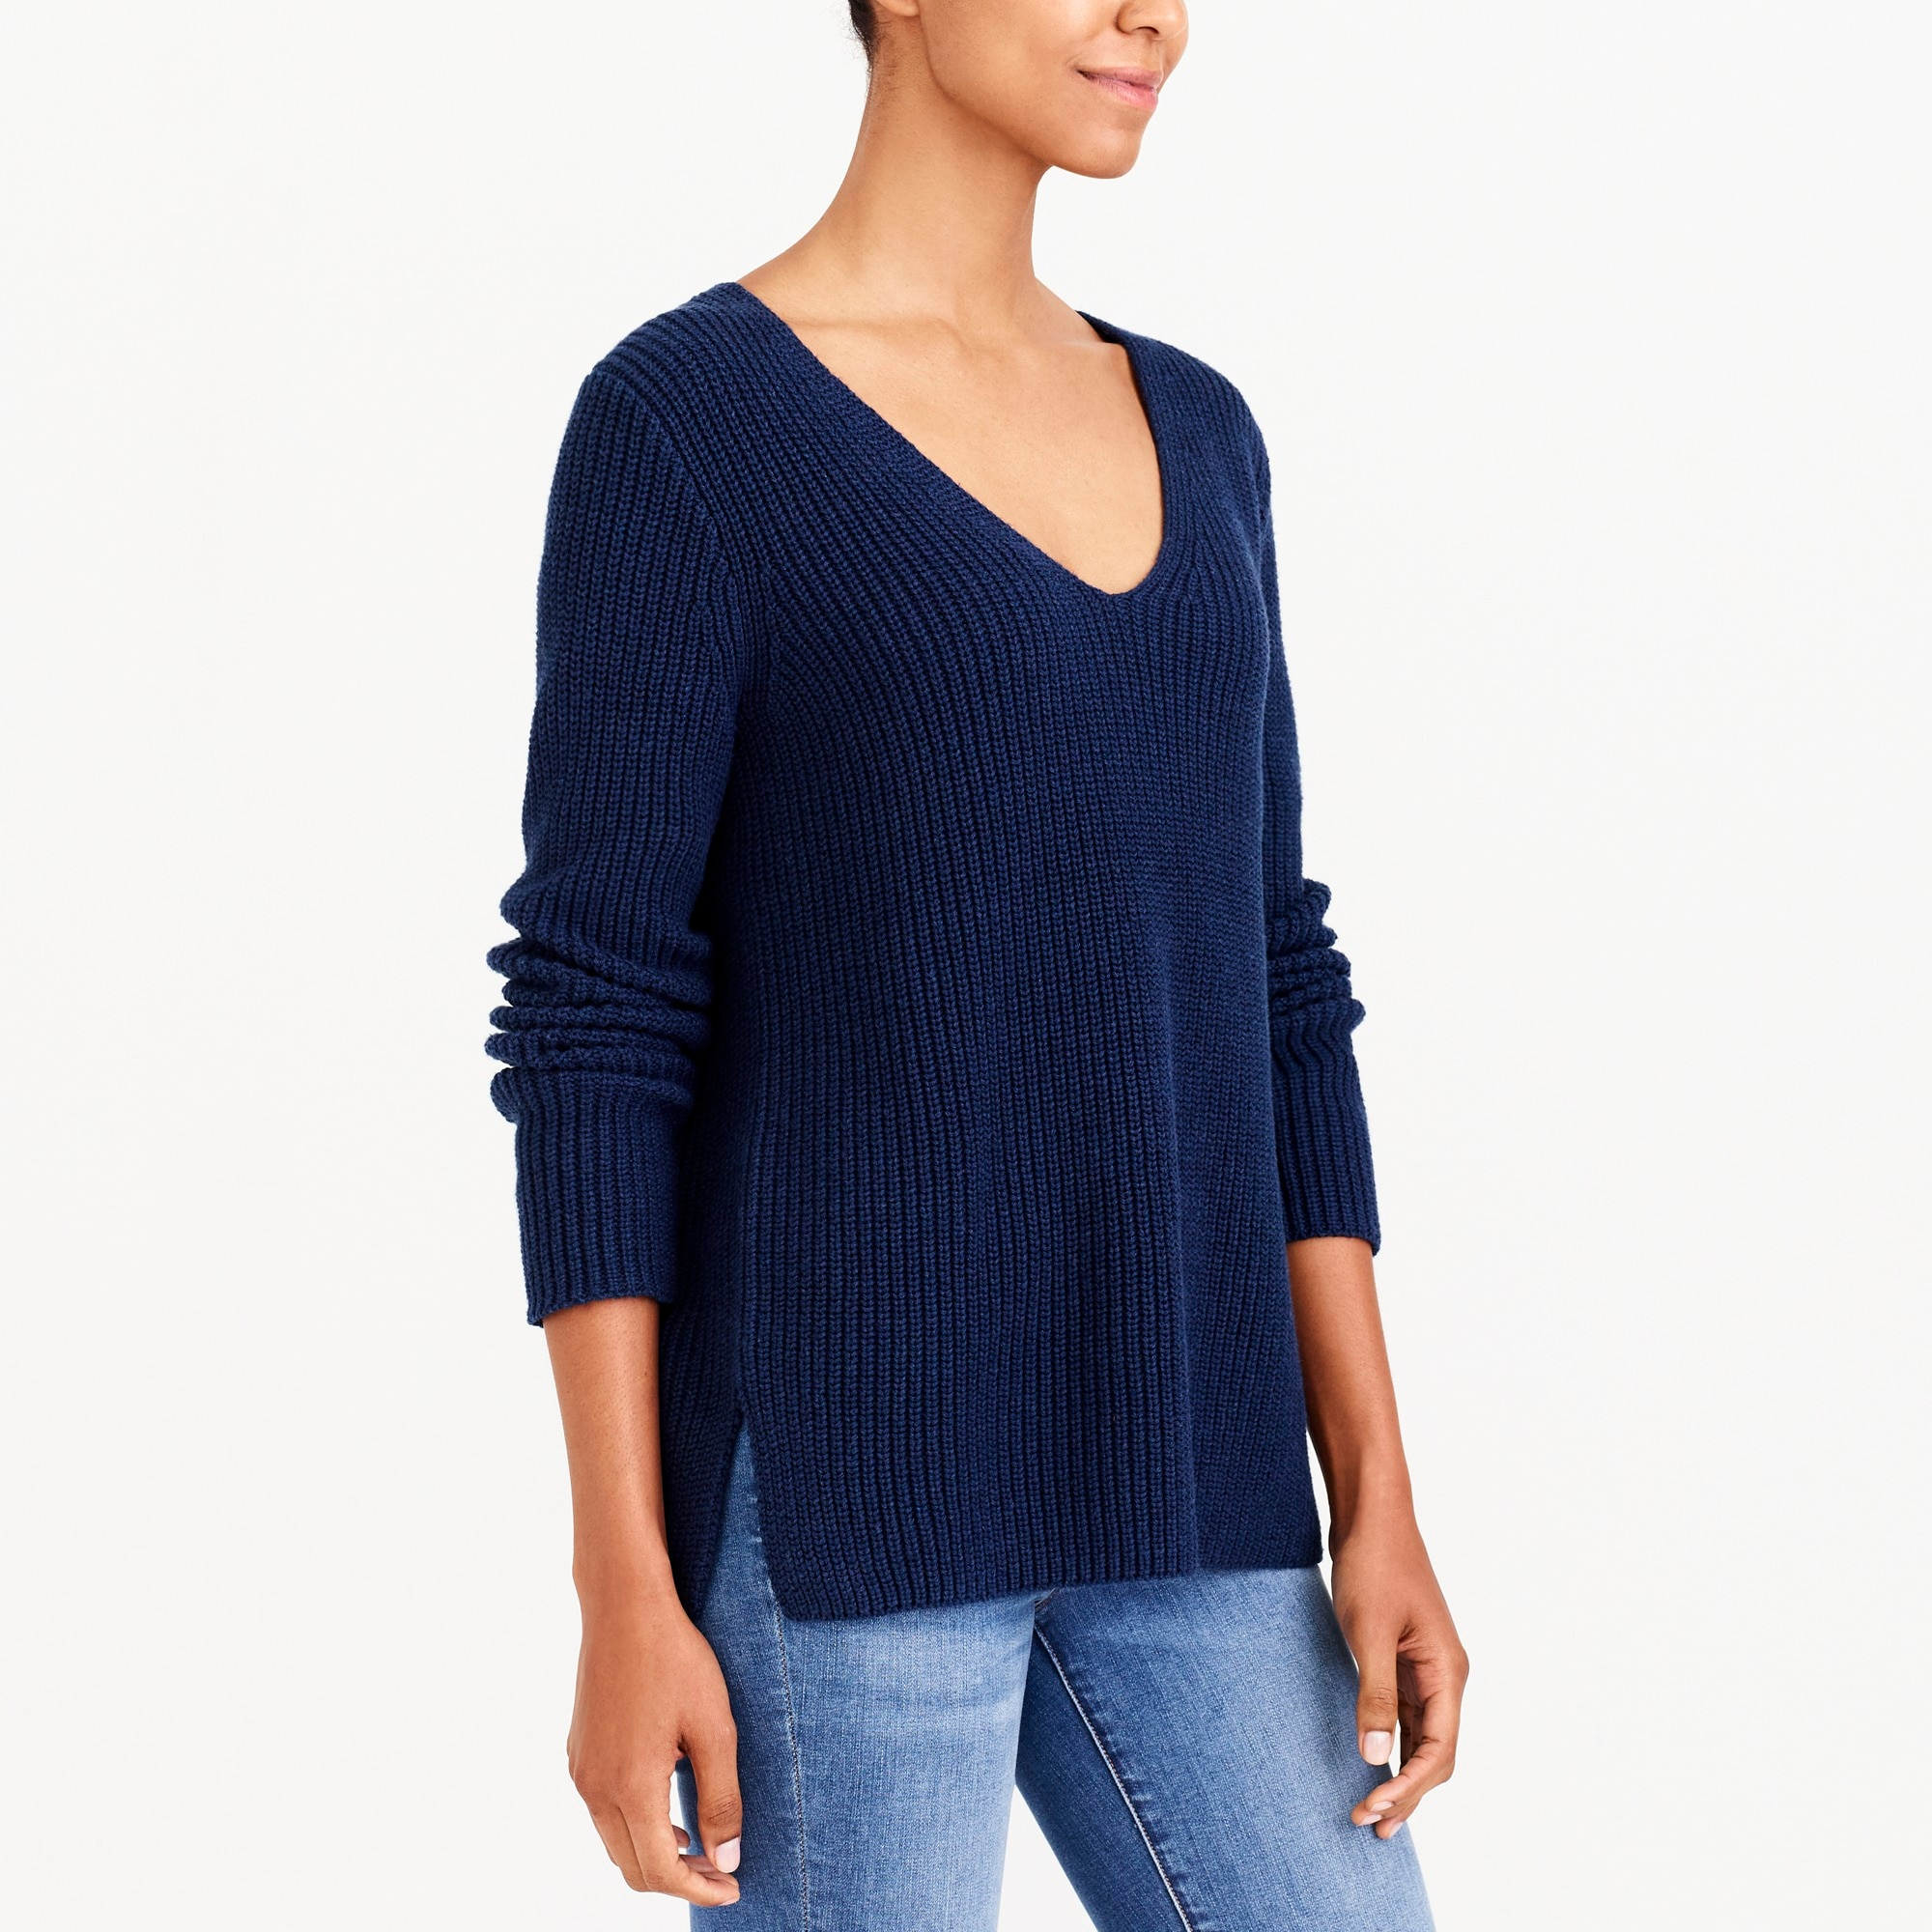 Heather V-neck pullover sweater